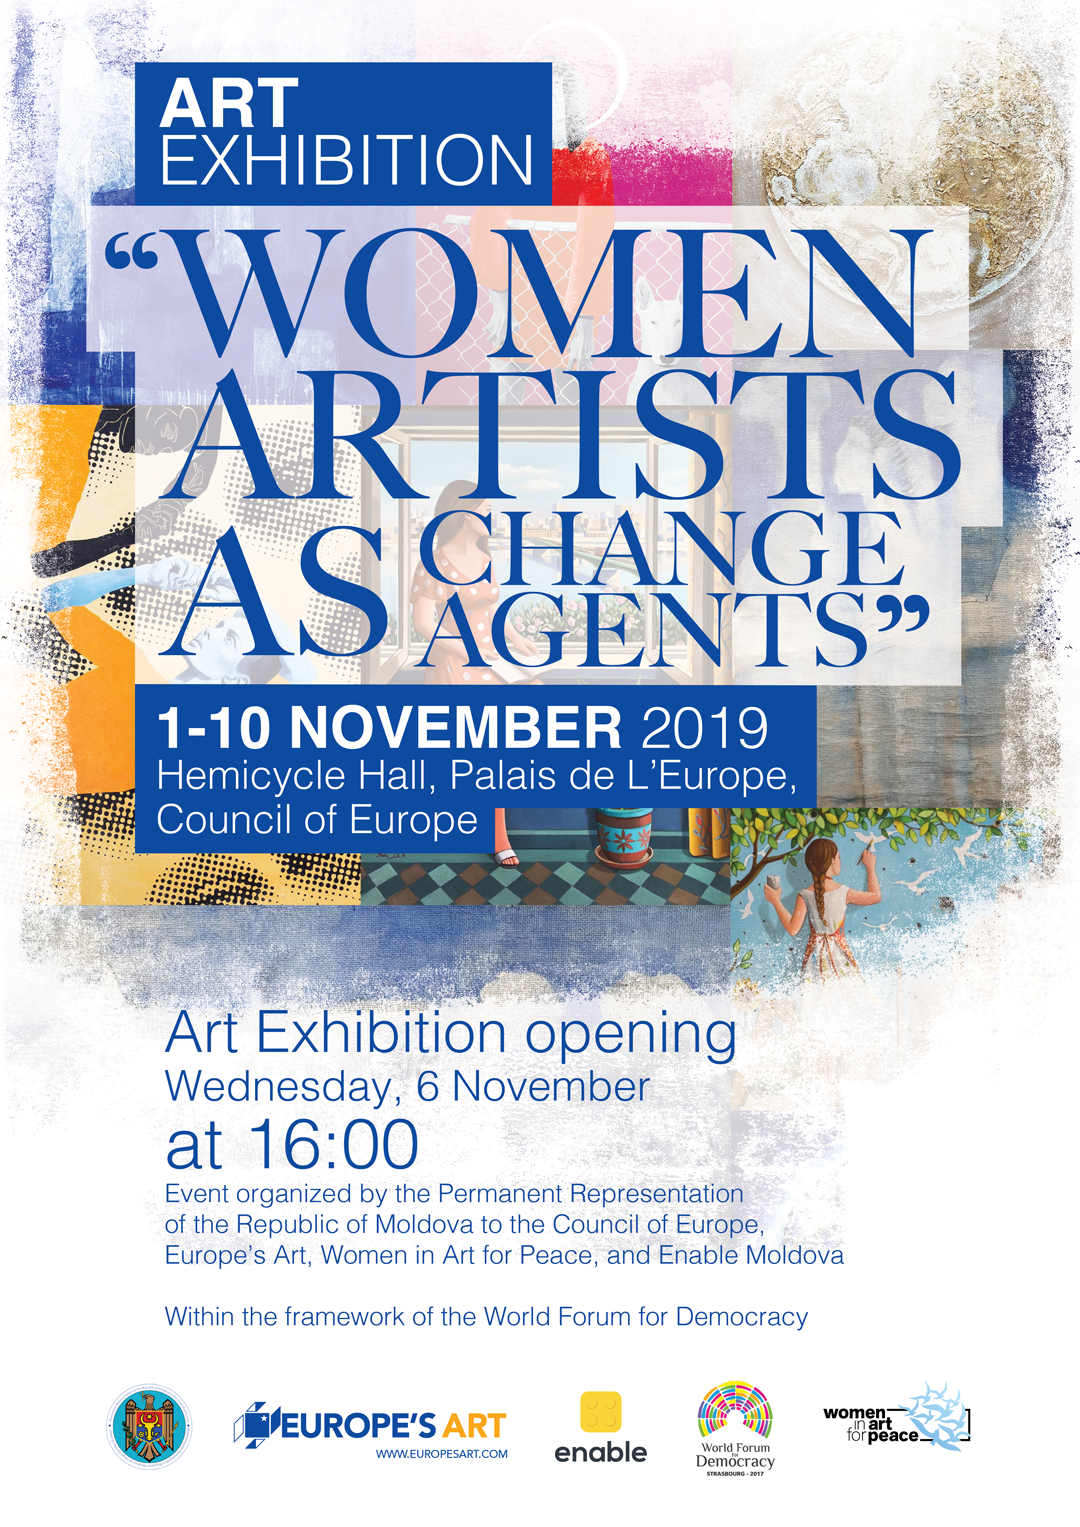 Women Artists As Change Agents